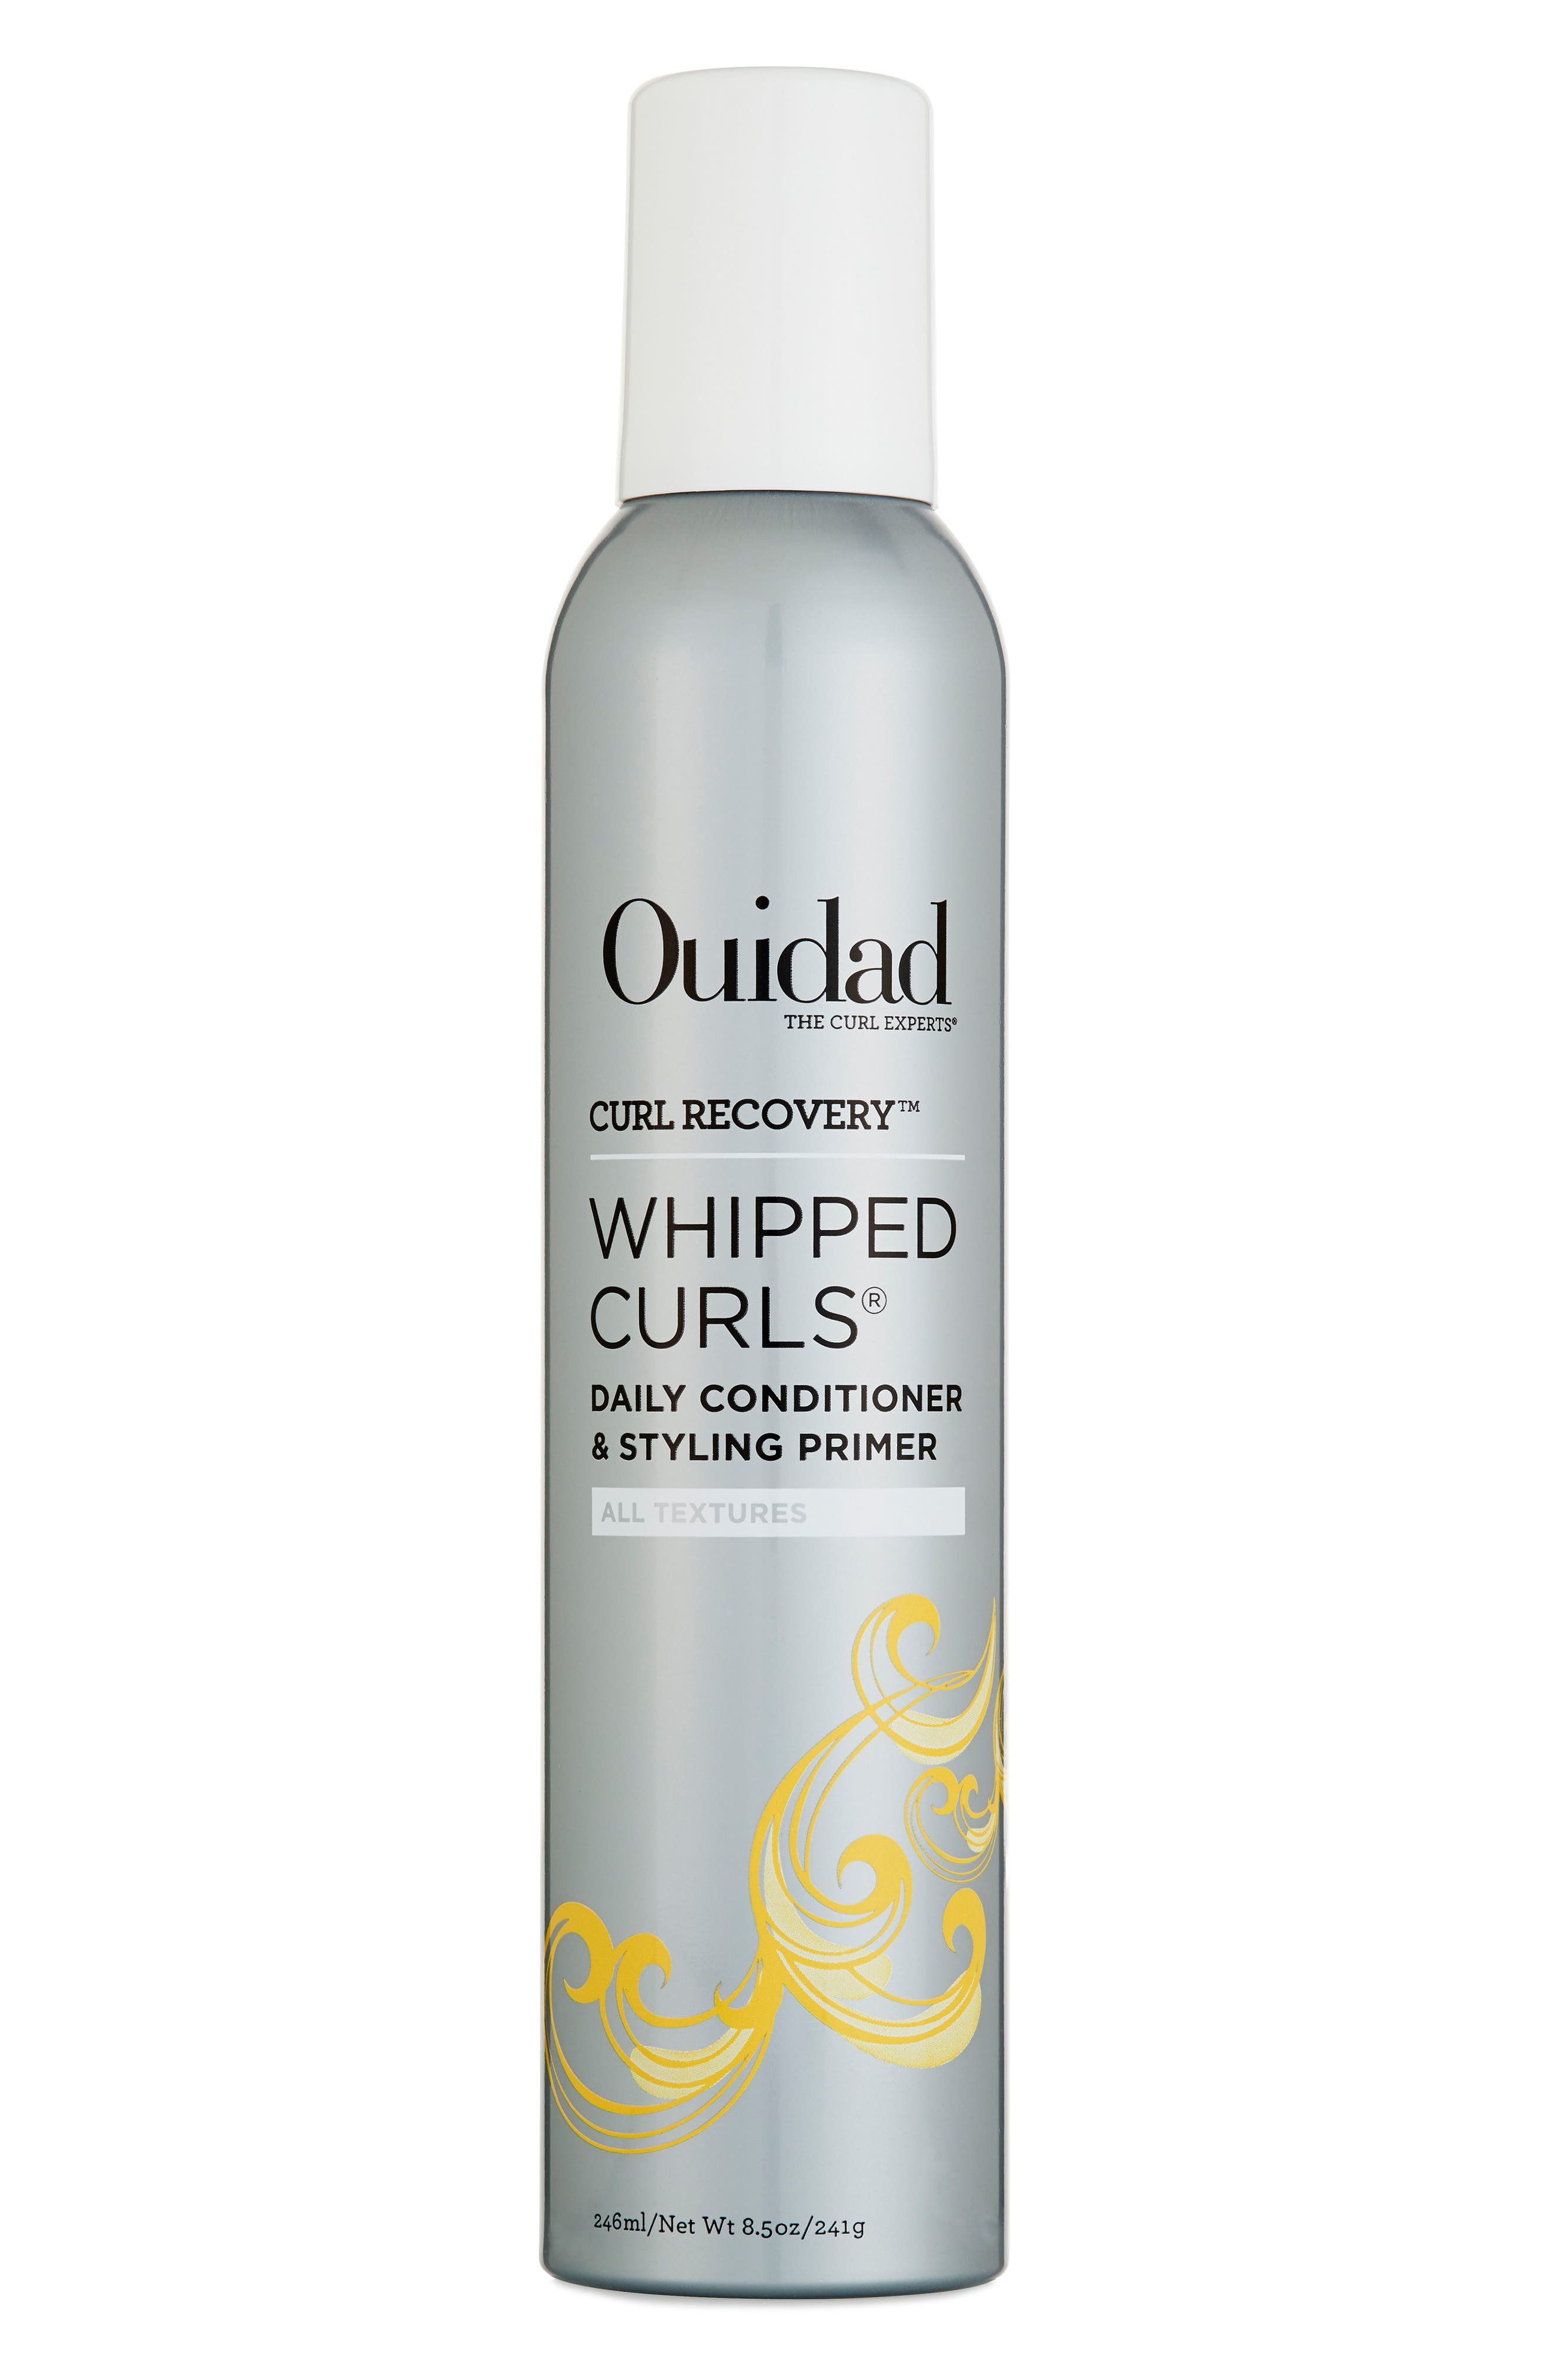 Ouidad Curl Recovery™ Whipped Curls Daily Conditioner & Styling Primer